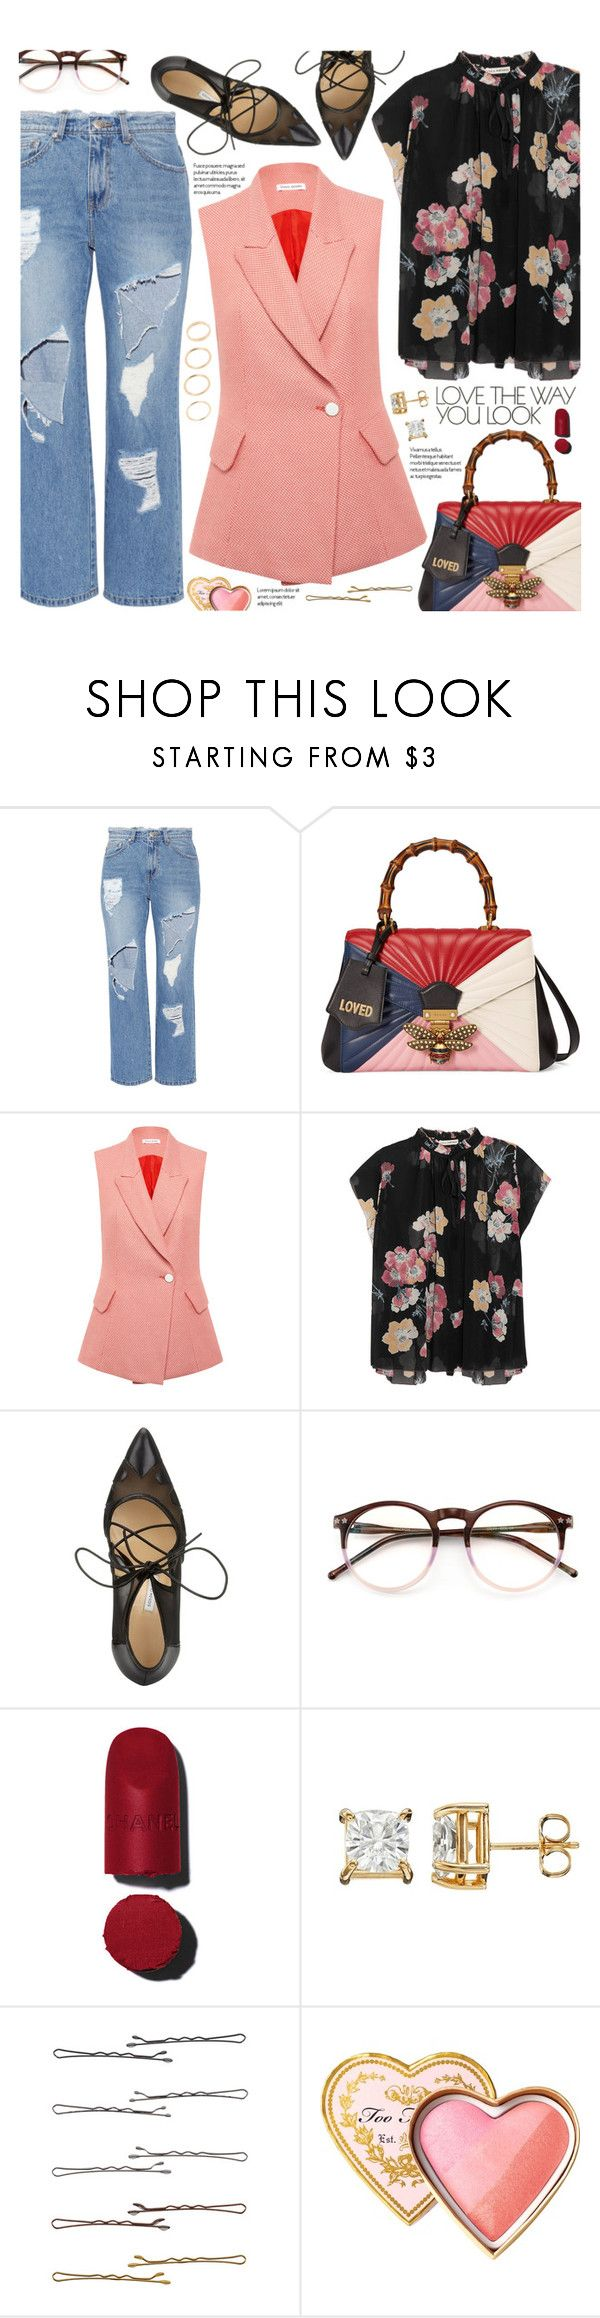 """love the way you look"" by valentino-lover ❤ liked on Polyvore featuring Steve J & Yoni P, Gucci, Bianca Spender, Ulla Johnson, Bionda Castana, Wildfox, Chanel, Forever 21 and Too Faced Cosmetics"